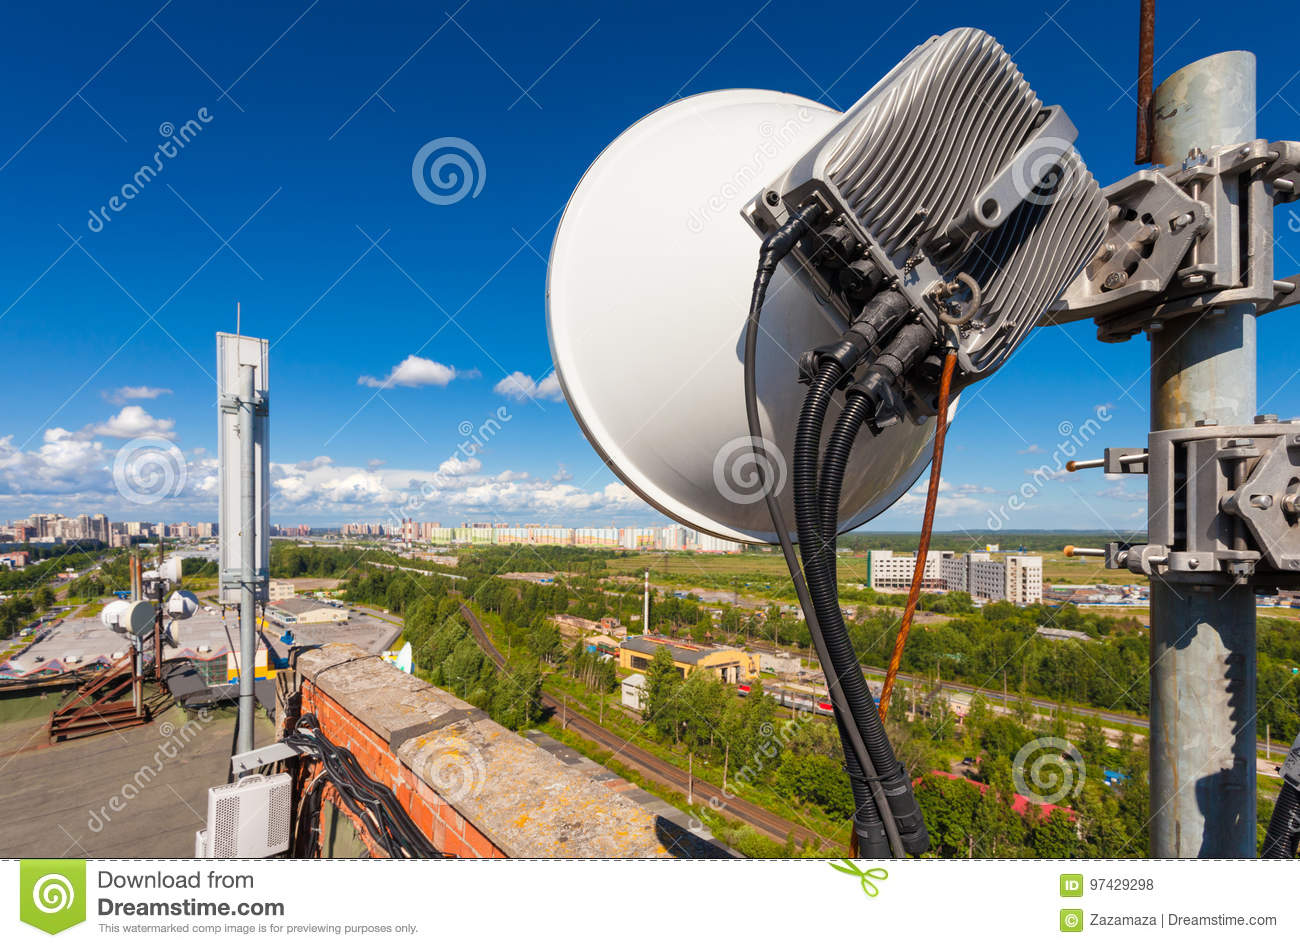 Telecommunication tower with wireless communications systems are including microwave, panel antennas, fiber, optic and power cabl